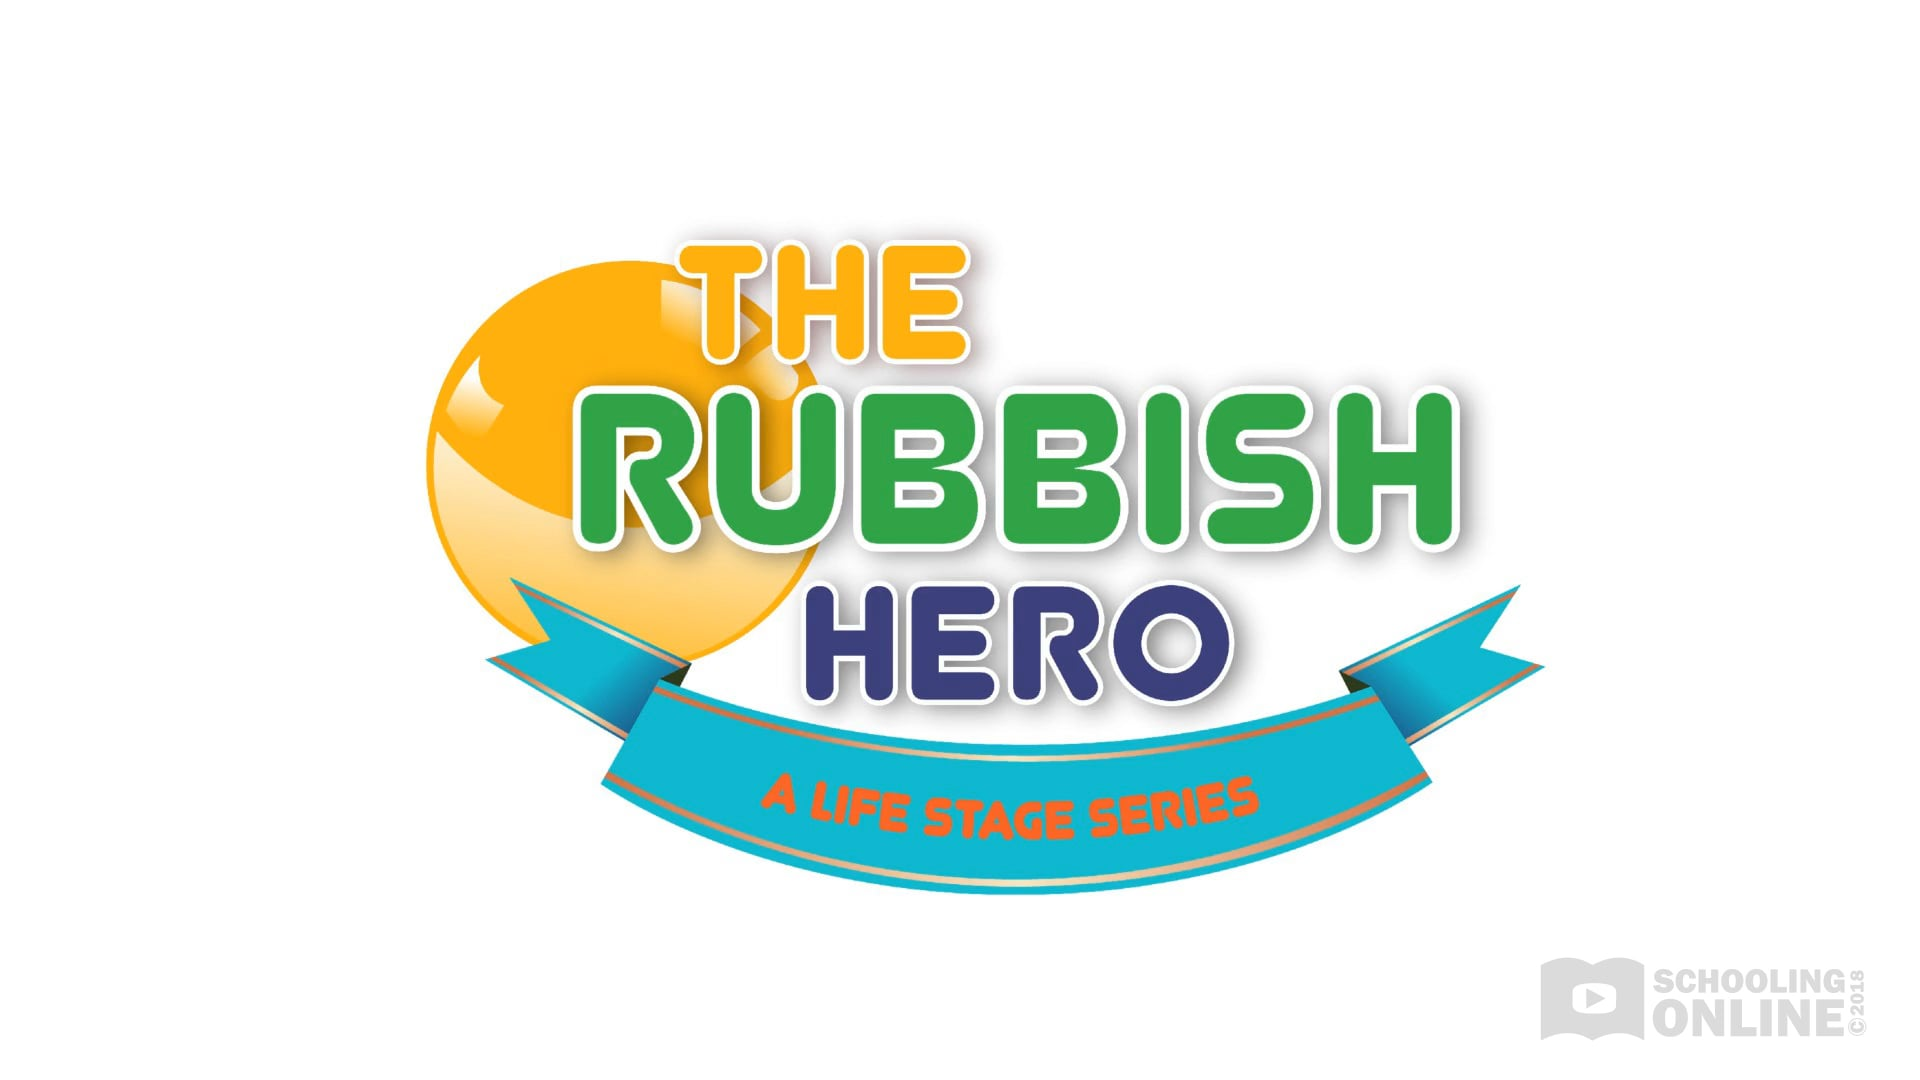 The Rubbish Hero - The Life Stage Series